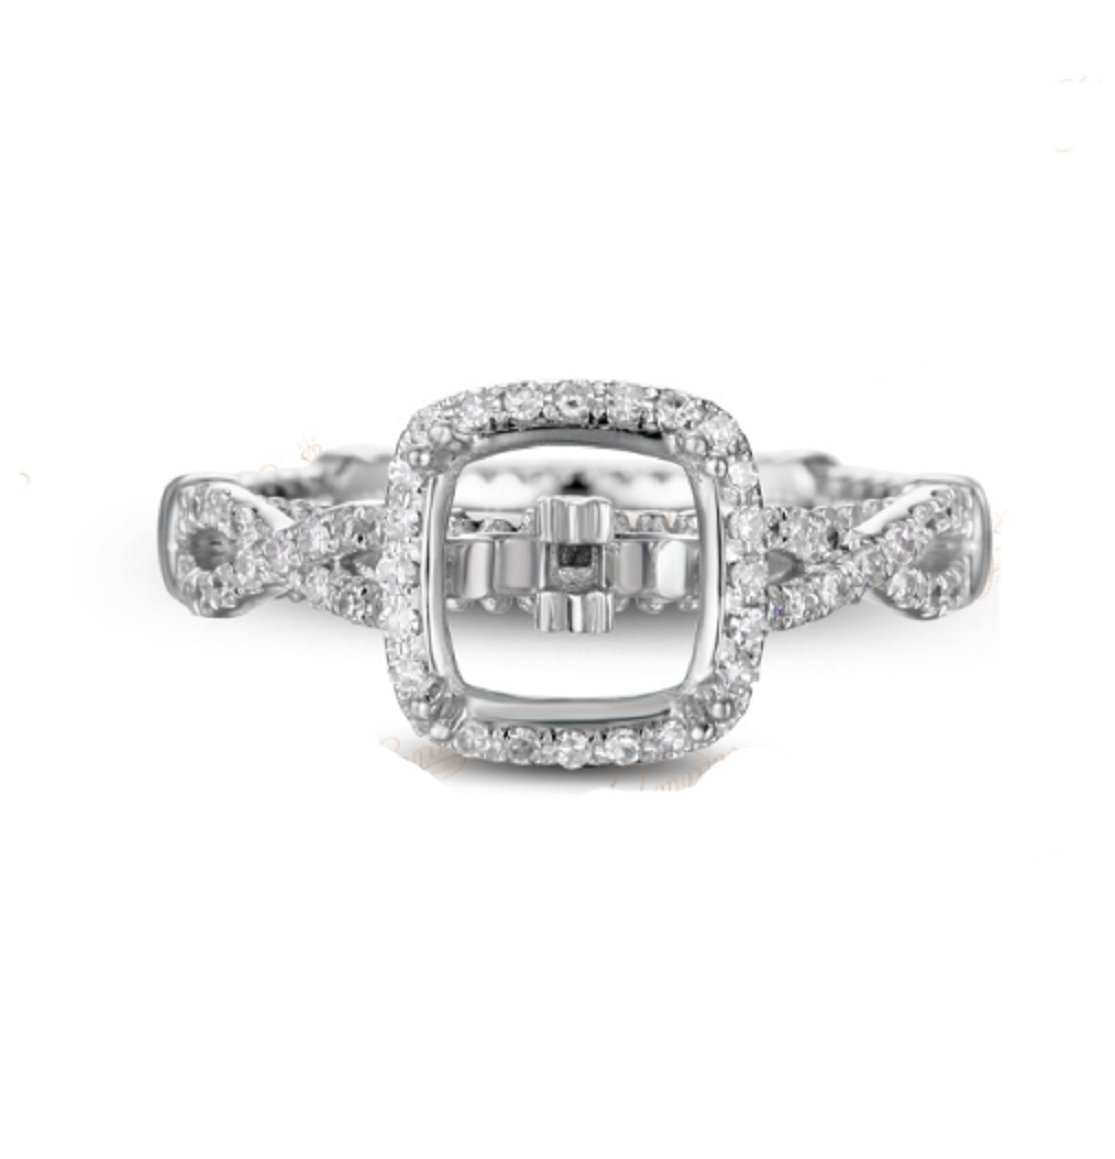 GOWE 7.5x7.5mm Cushion Cut Natural Diamond Solid 14K Two Tone Gold Semi Mount Ring